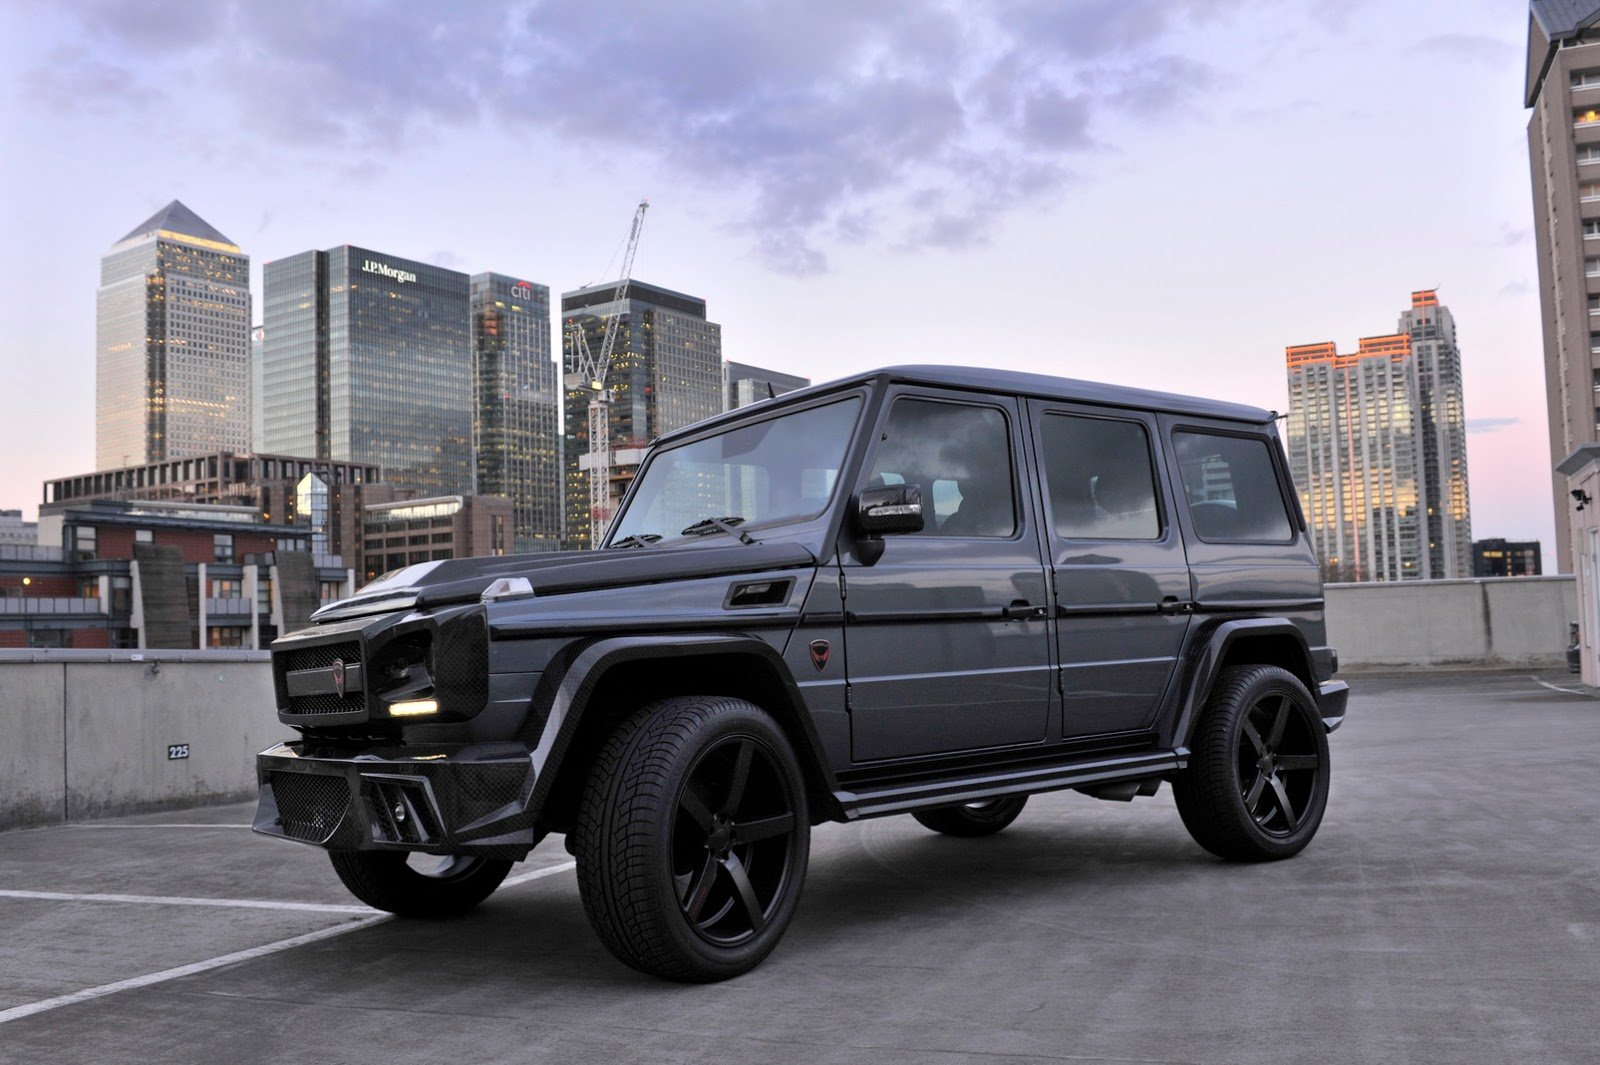 prindiville mercedes g63 amg cars 4x4 tuning wallpaper 1600x1065 680643 wallpaperup. Black Bedroom Furniture Sets. Home Design Ideas